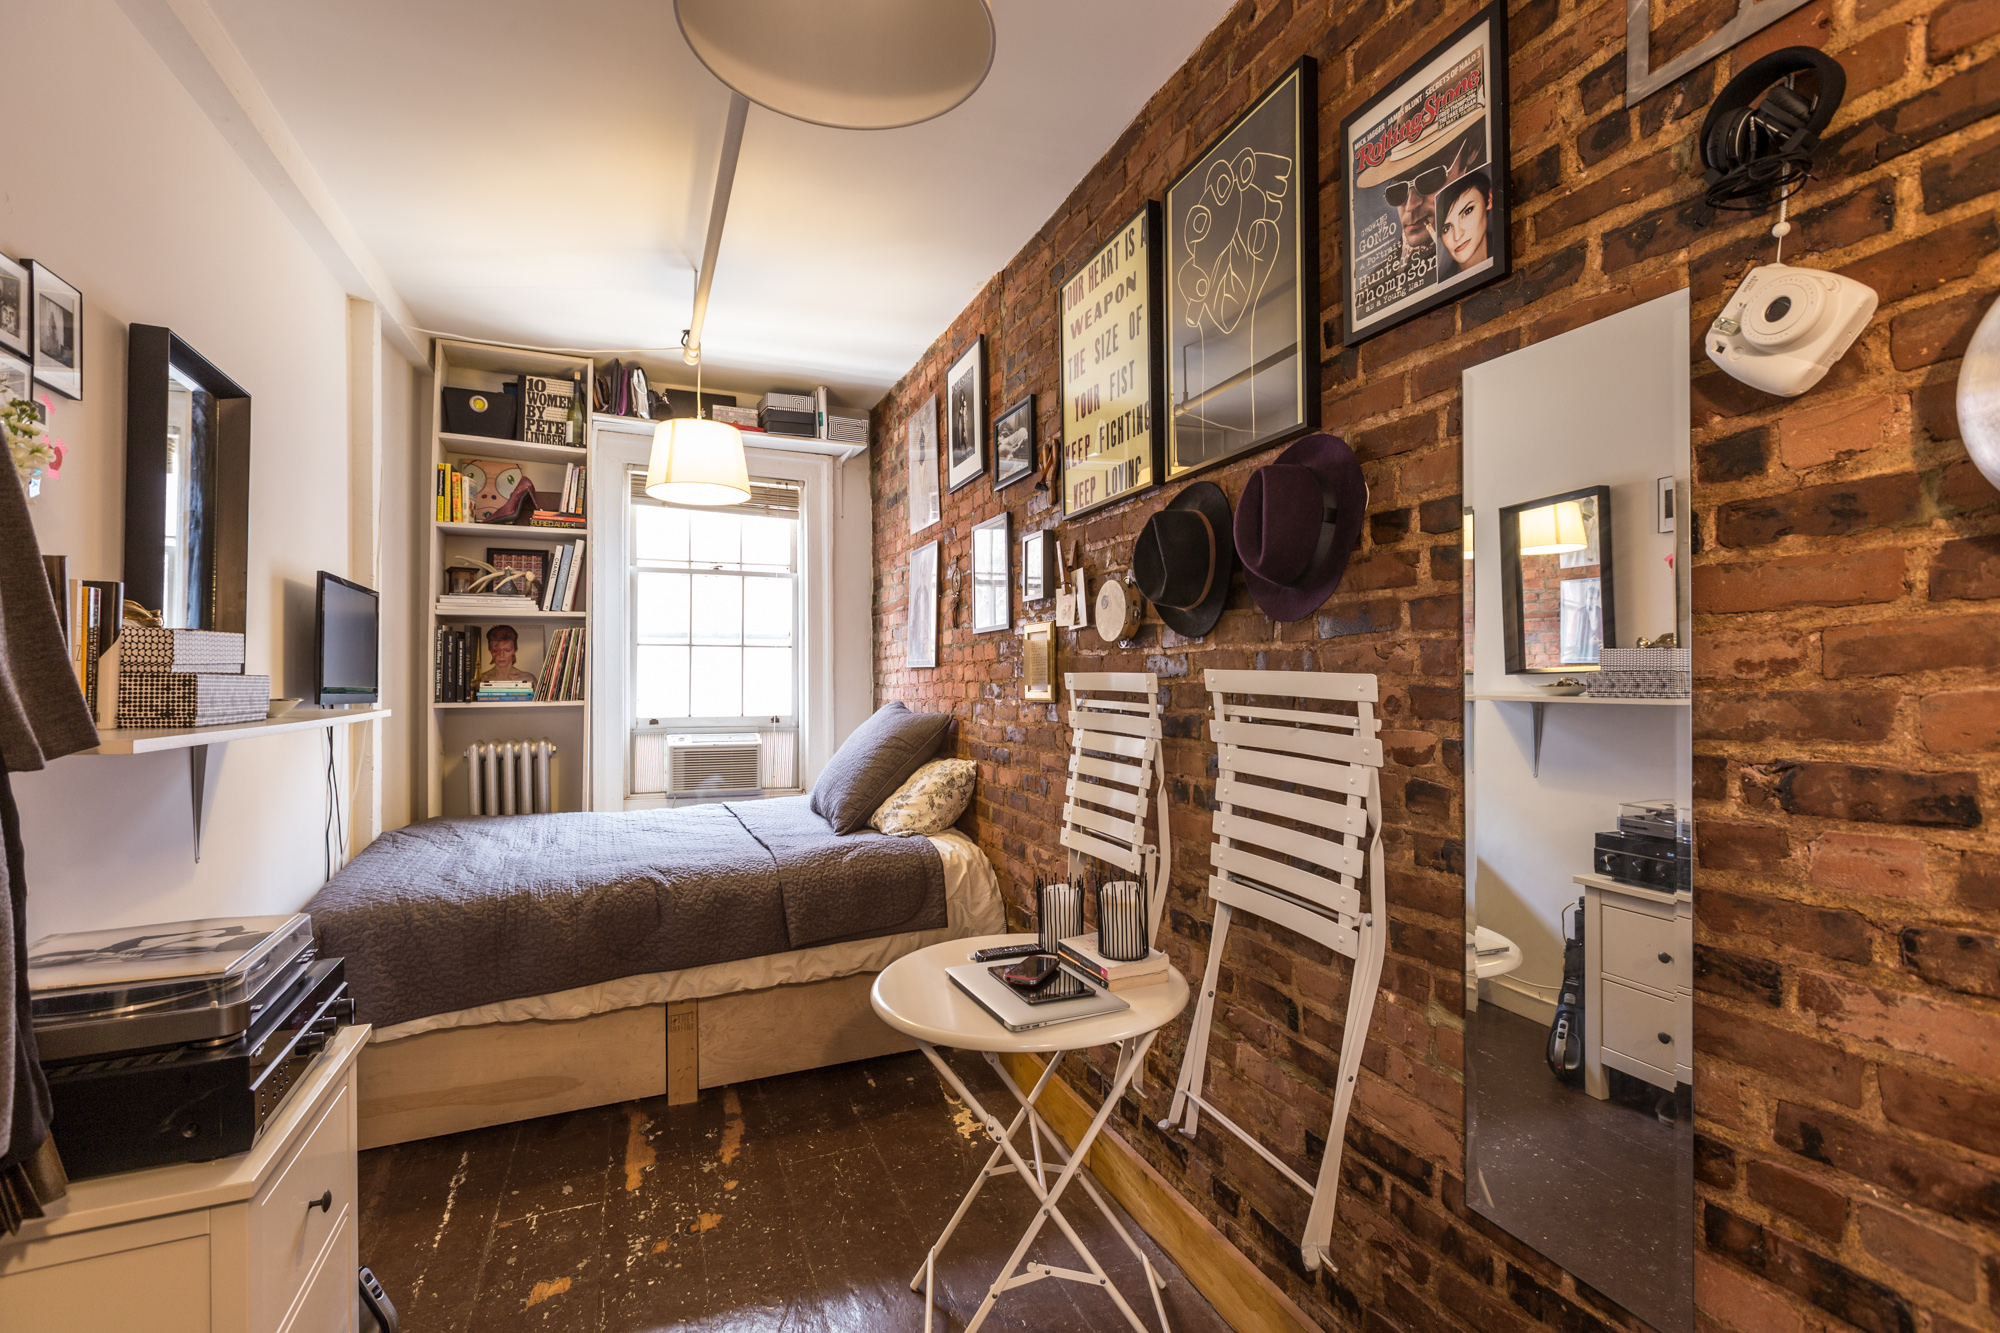 shoe box living in micro apartments a response to housing